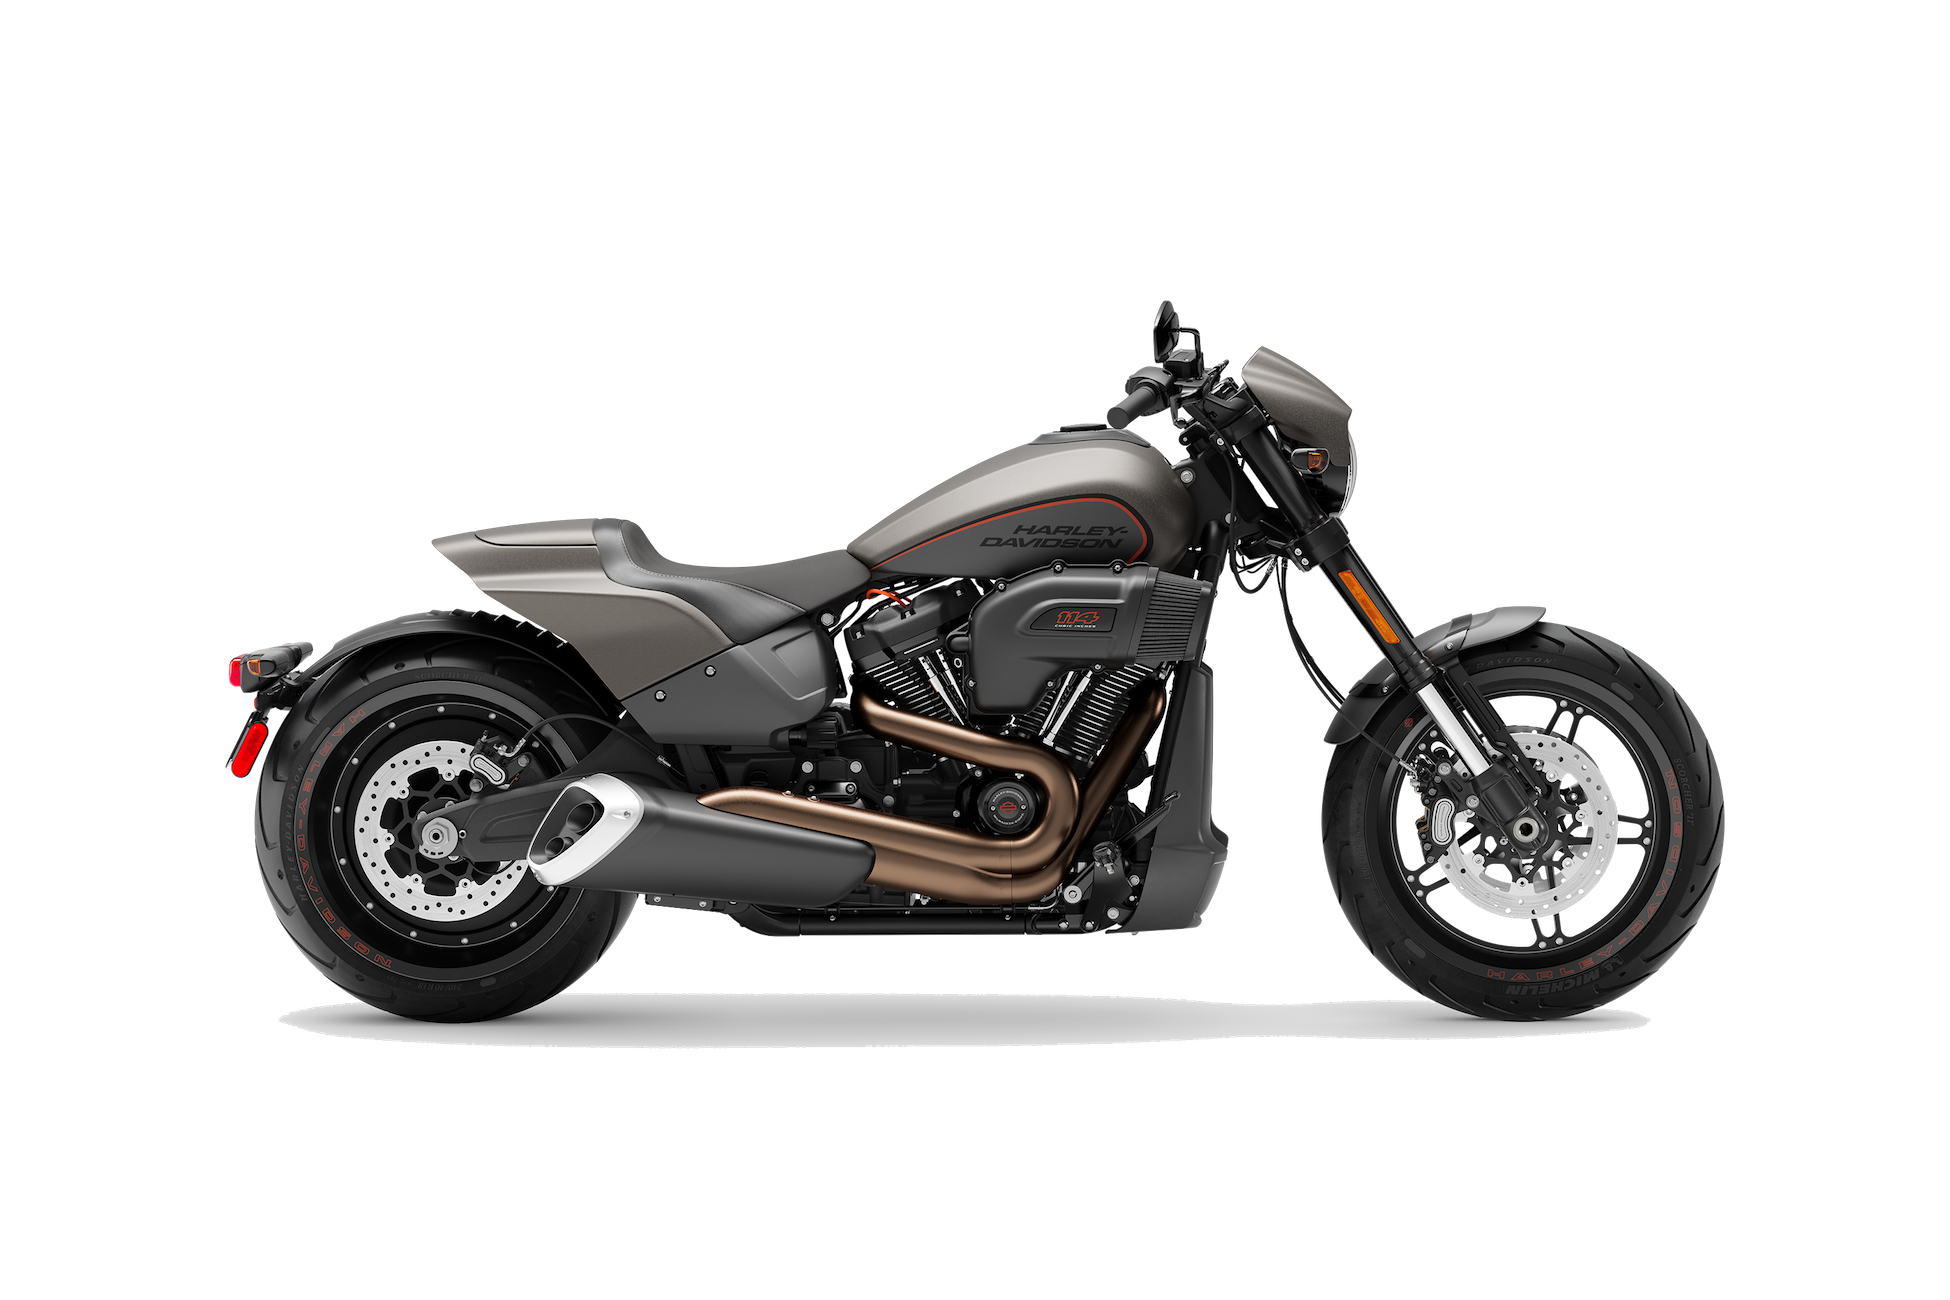 2019 H-D® FXDR™ 114 in Industrial Gray Denim